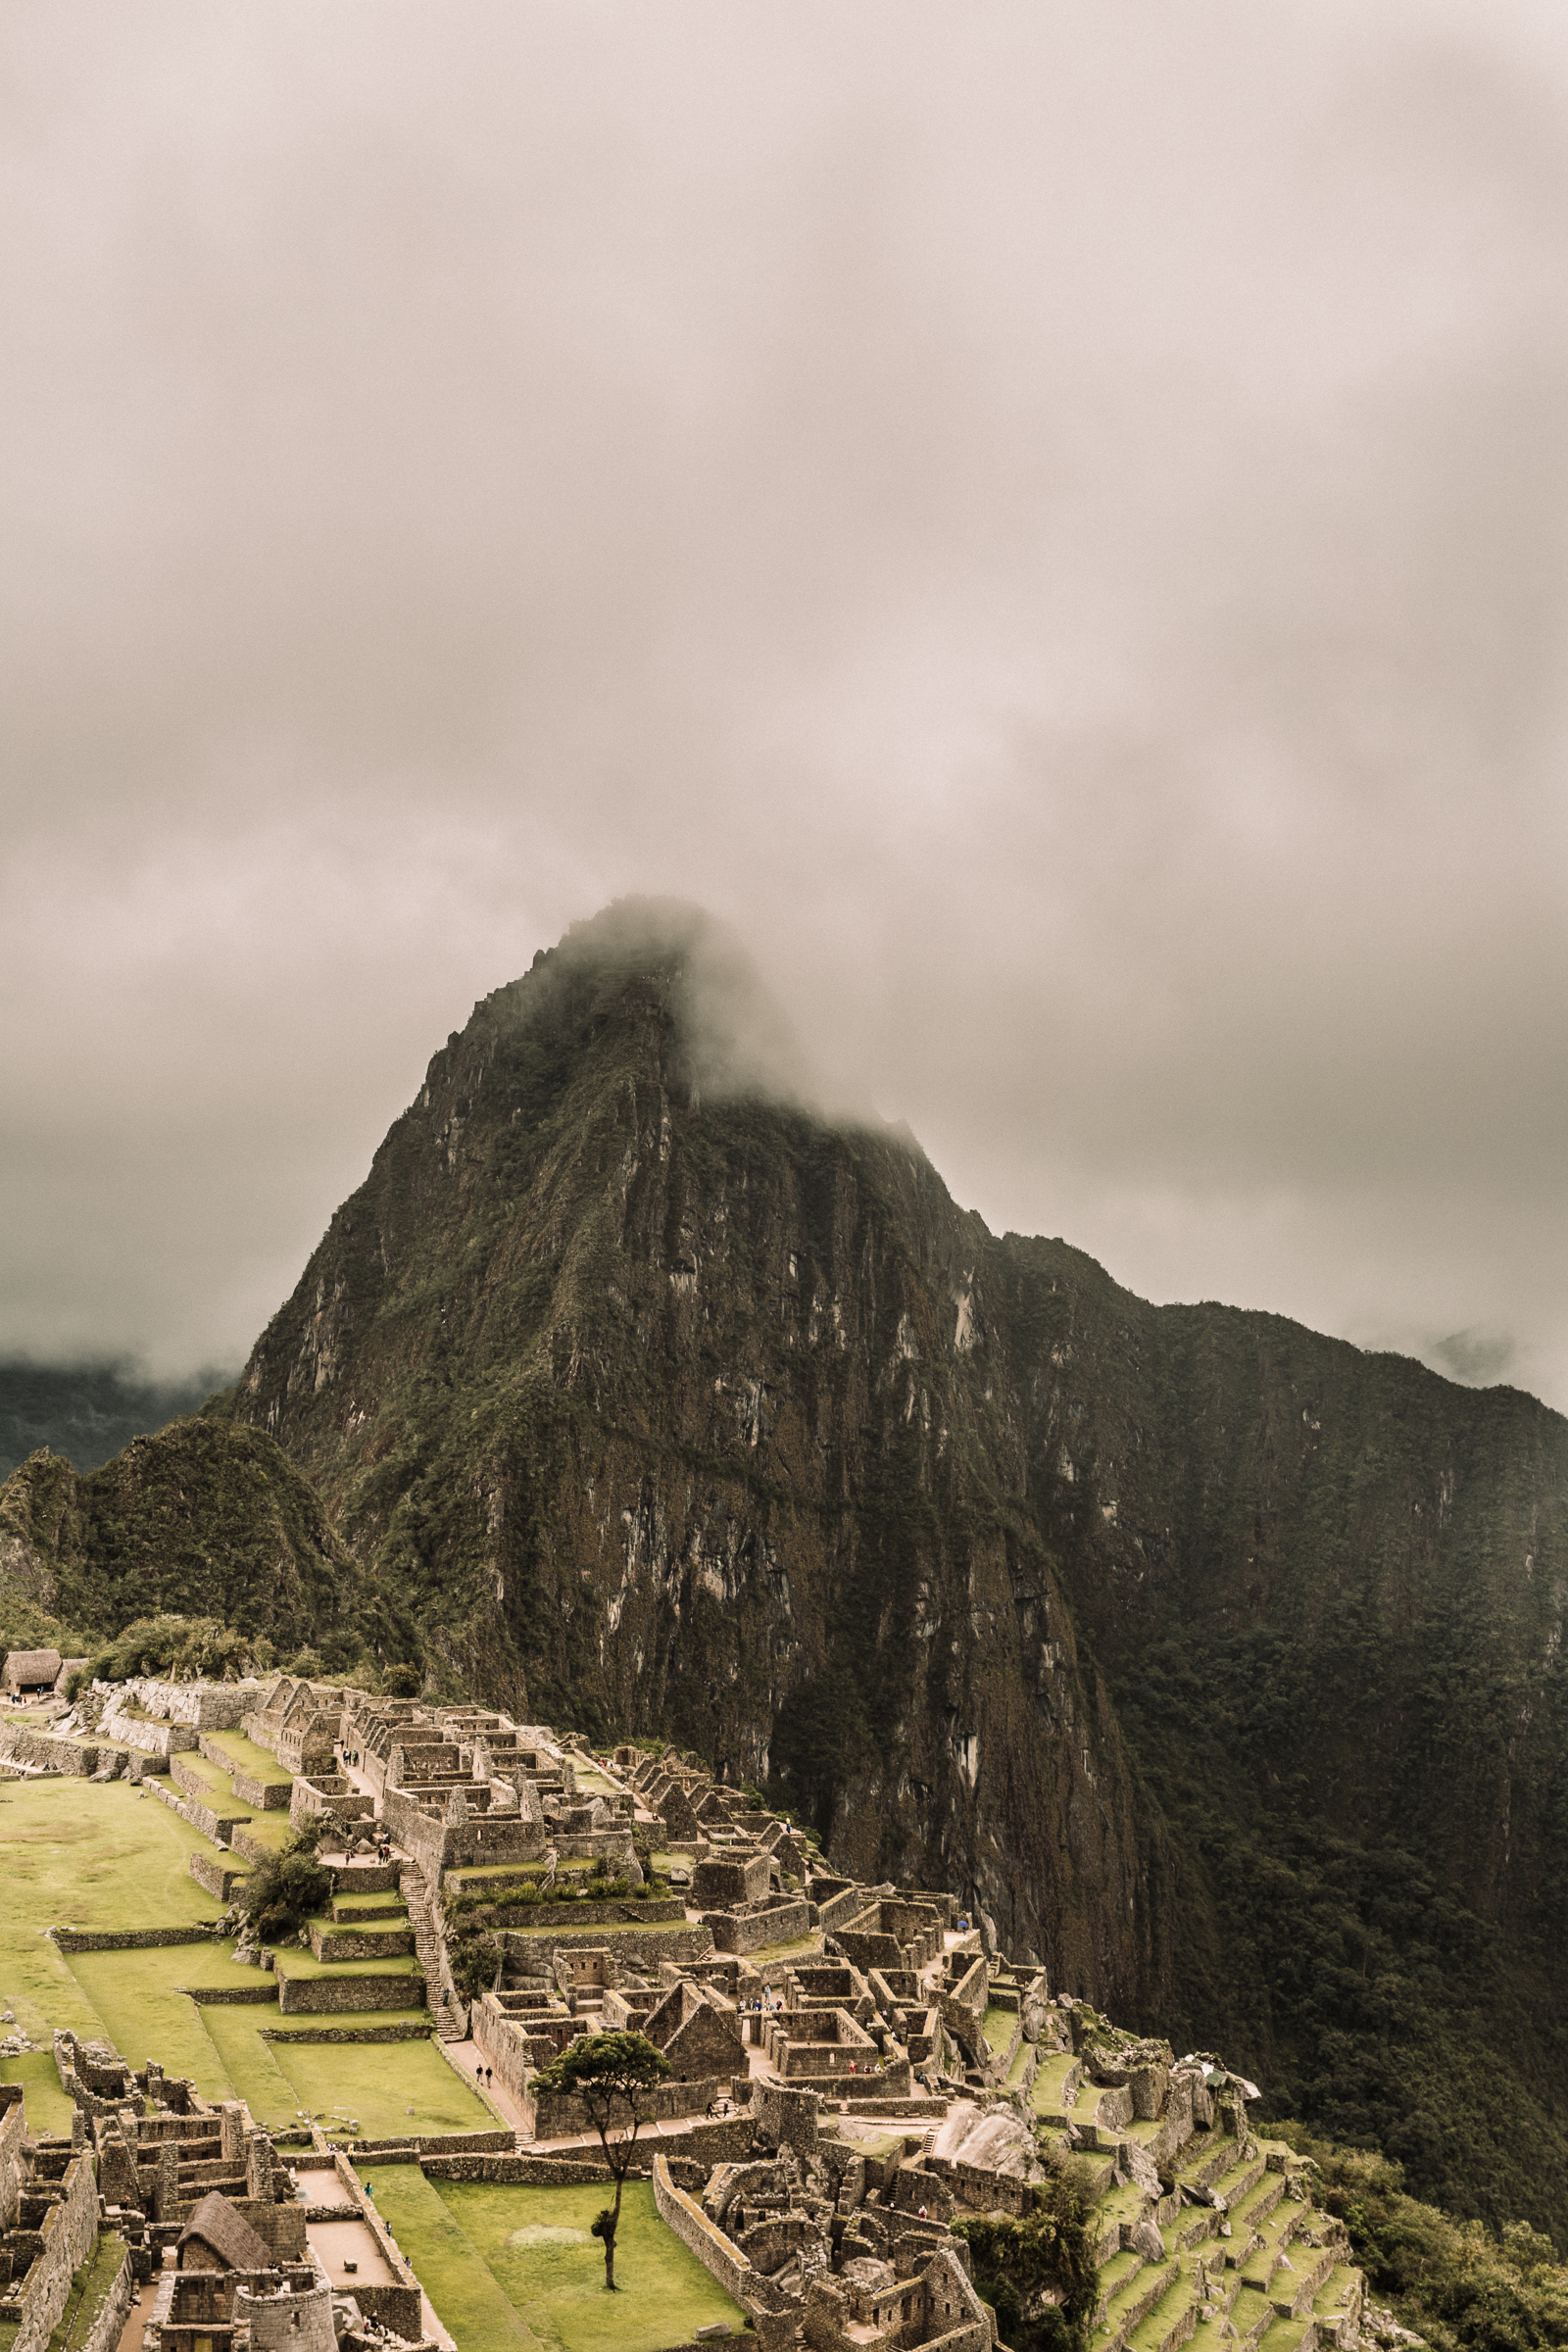 Peru - Honeymoon - Cuzco, Peru - K. Stoddard Photography & Fine Art (77 of 83).jpg